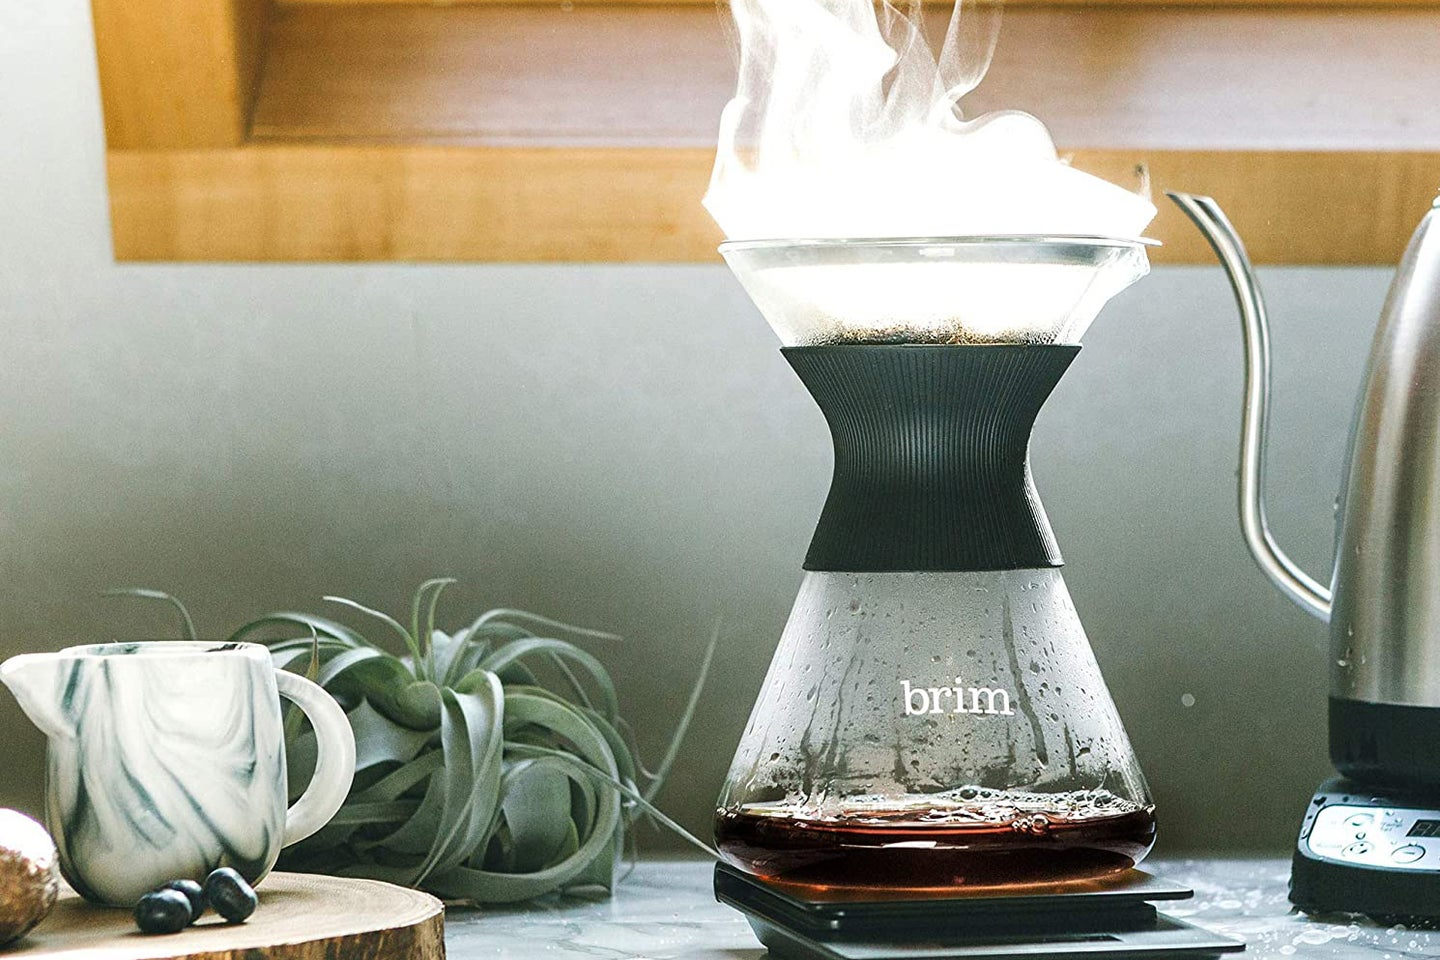 Coffee maker on table